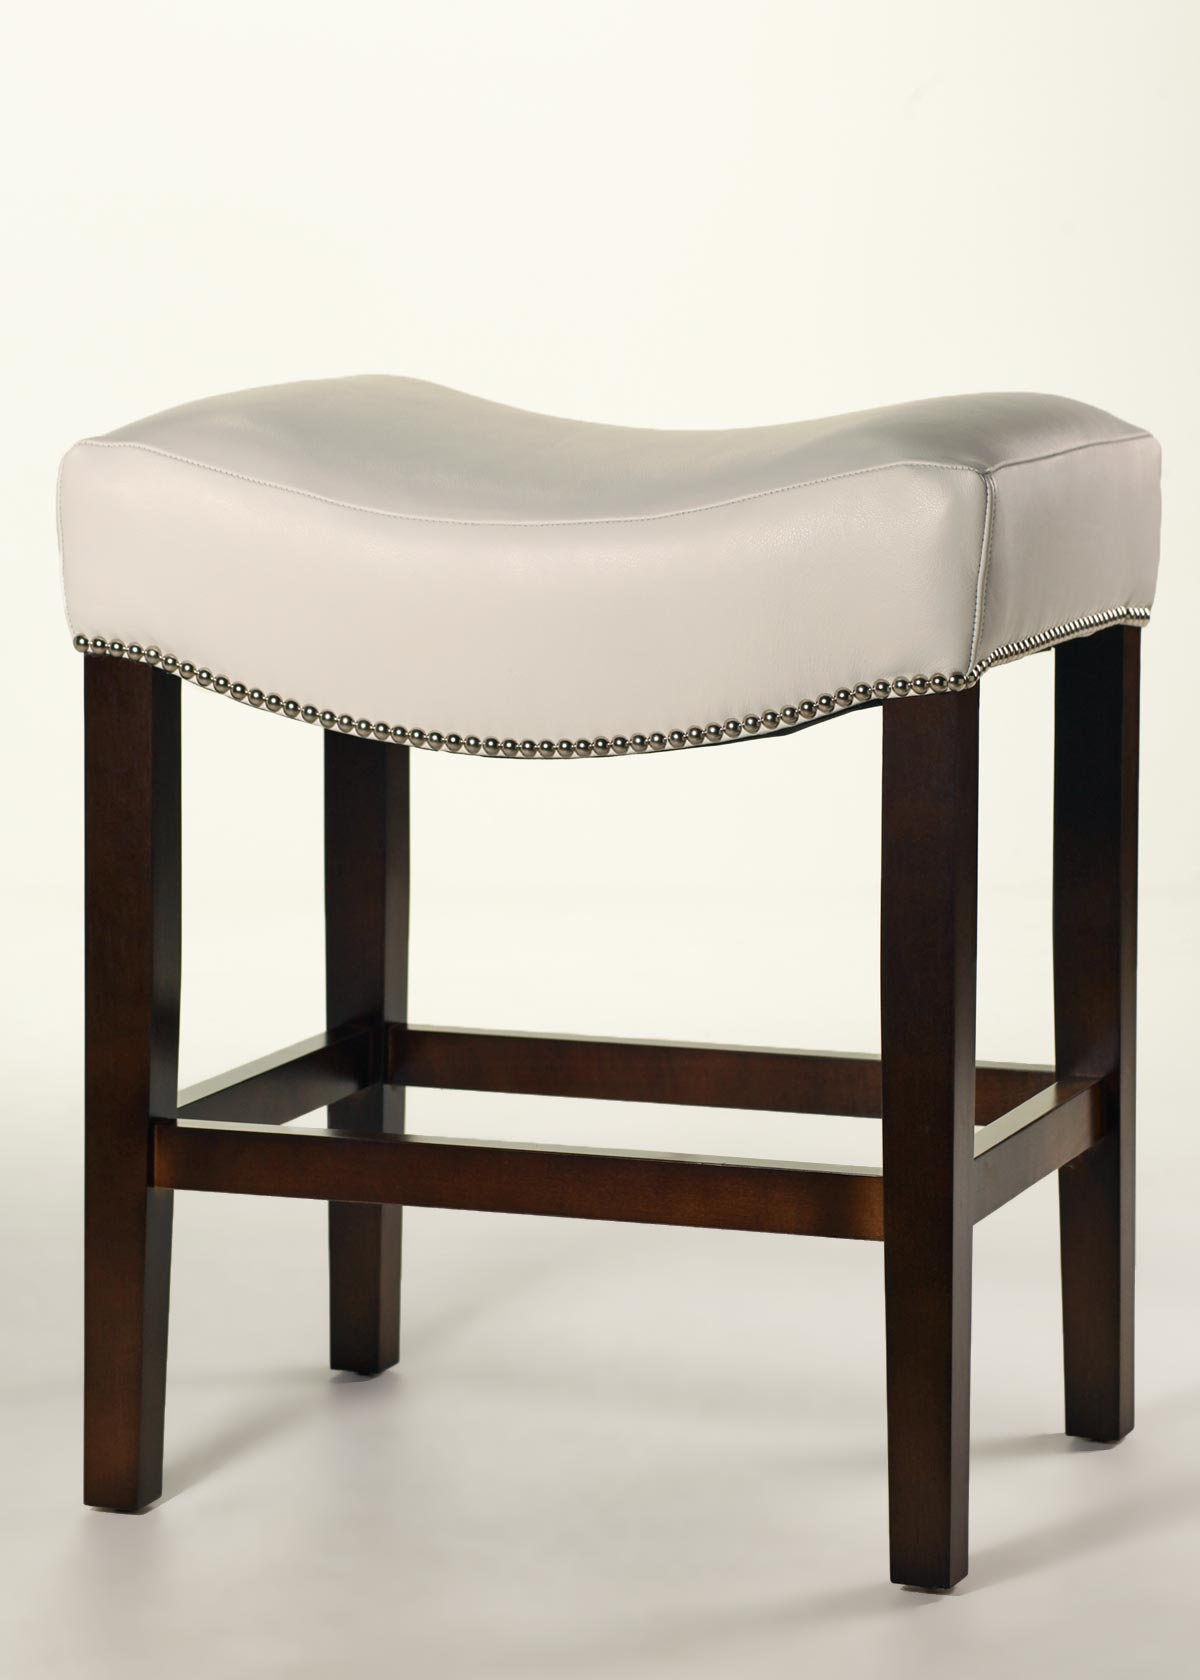 slipcovers for parsons chairs mirrored dining table and cody saddle stool - custom leather counter, finish, trim buy direct